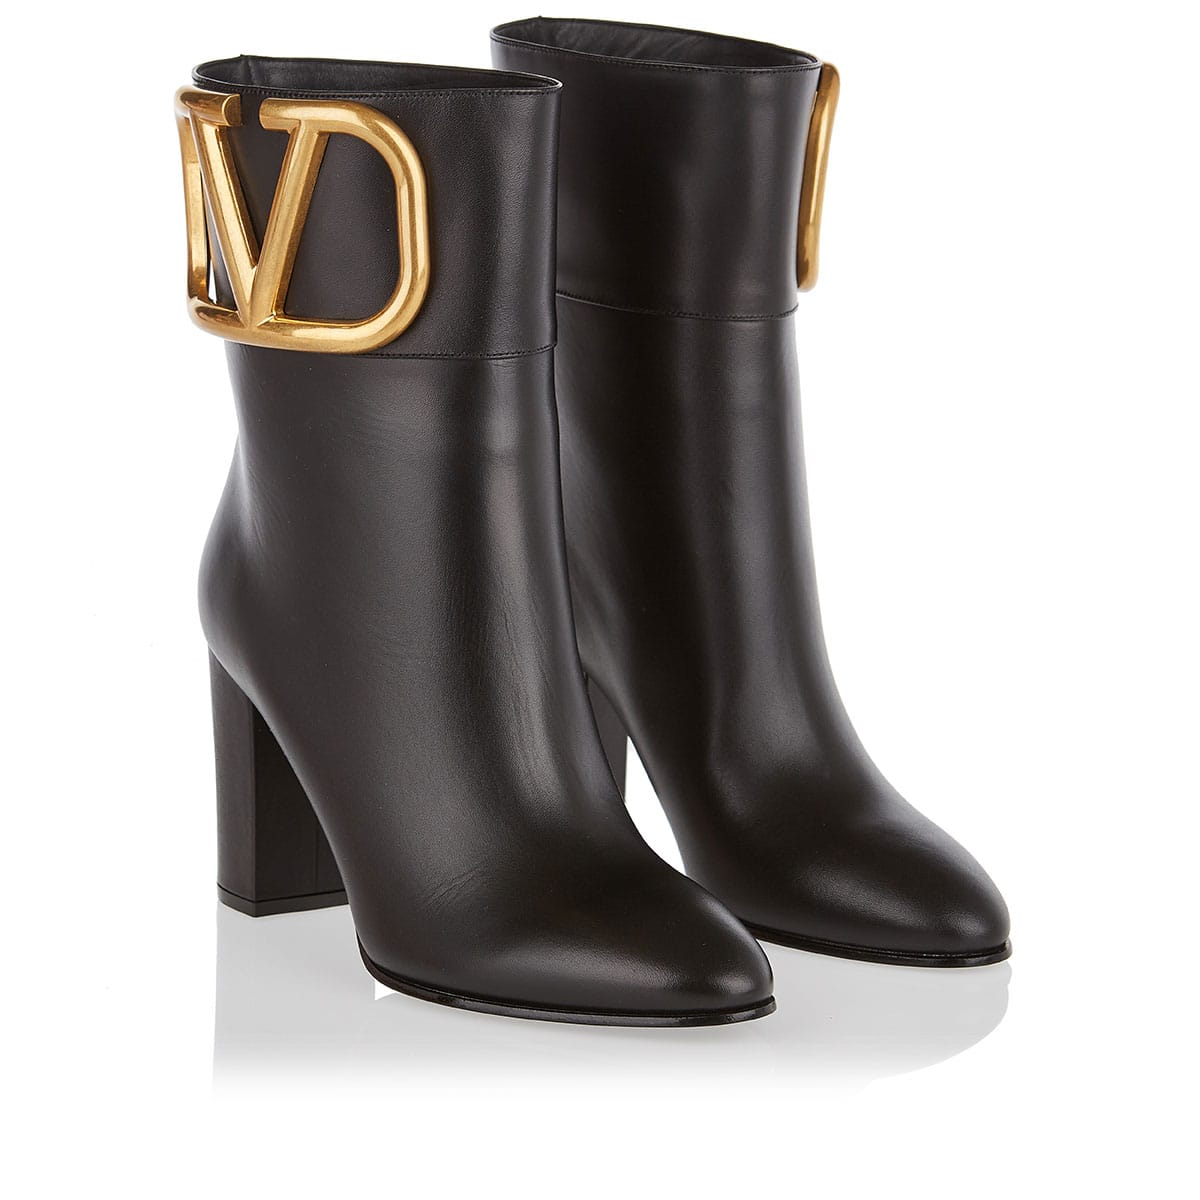 Supervee leather ankle boots